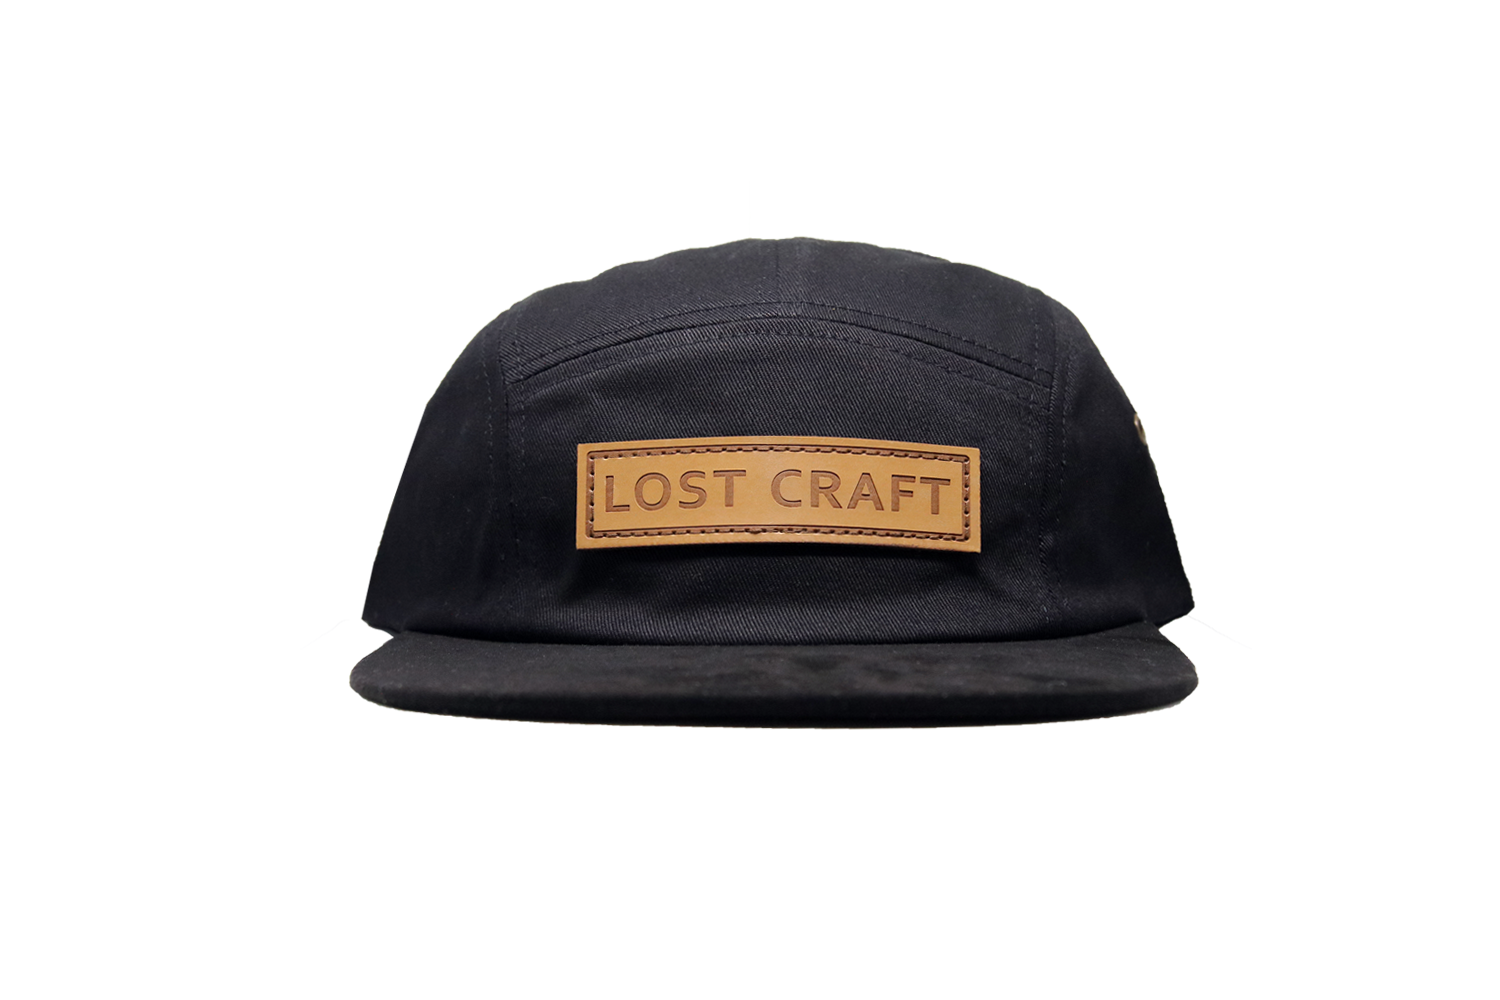 LOST CRAFT 5 PANEL